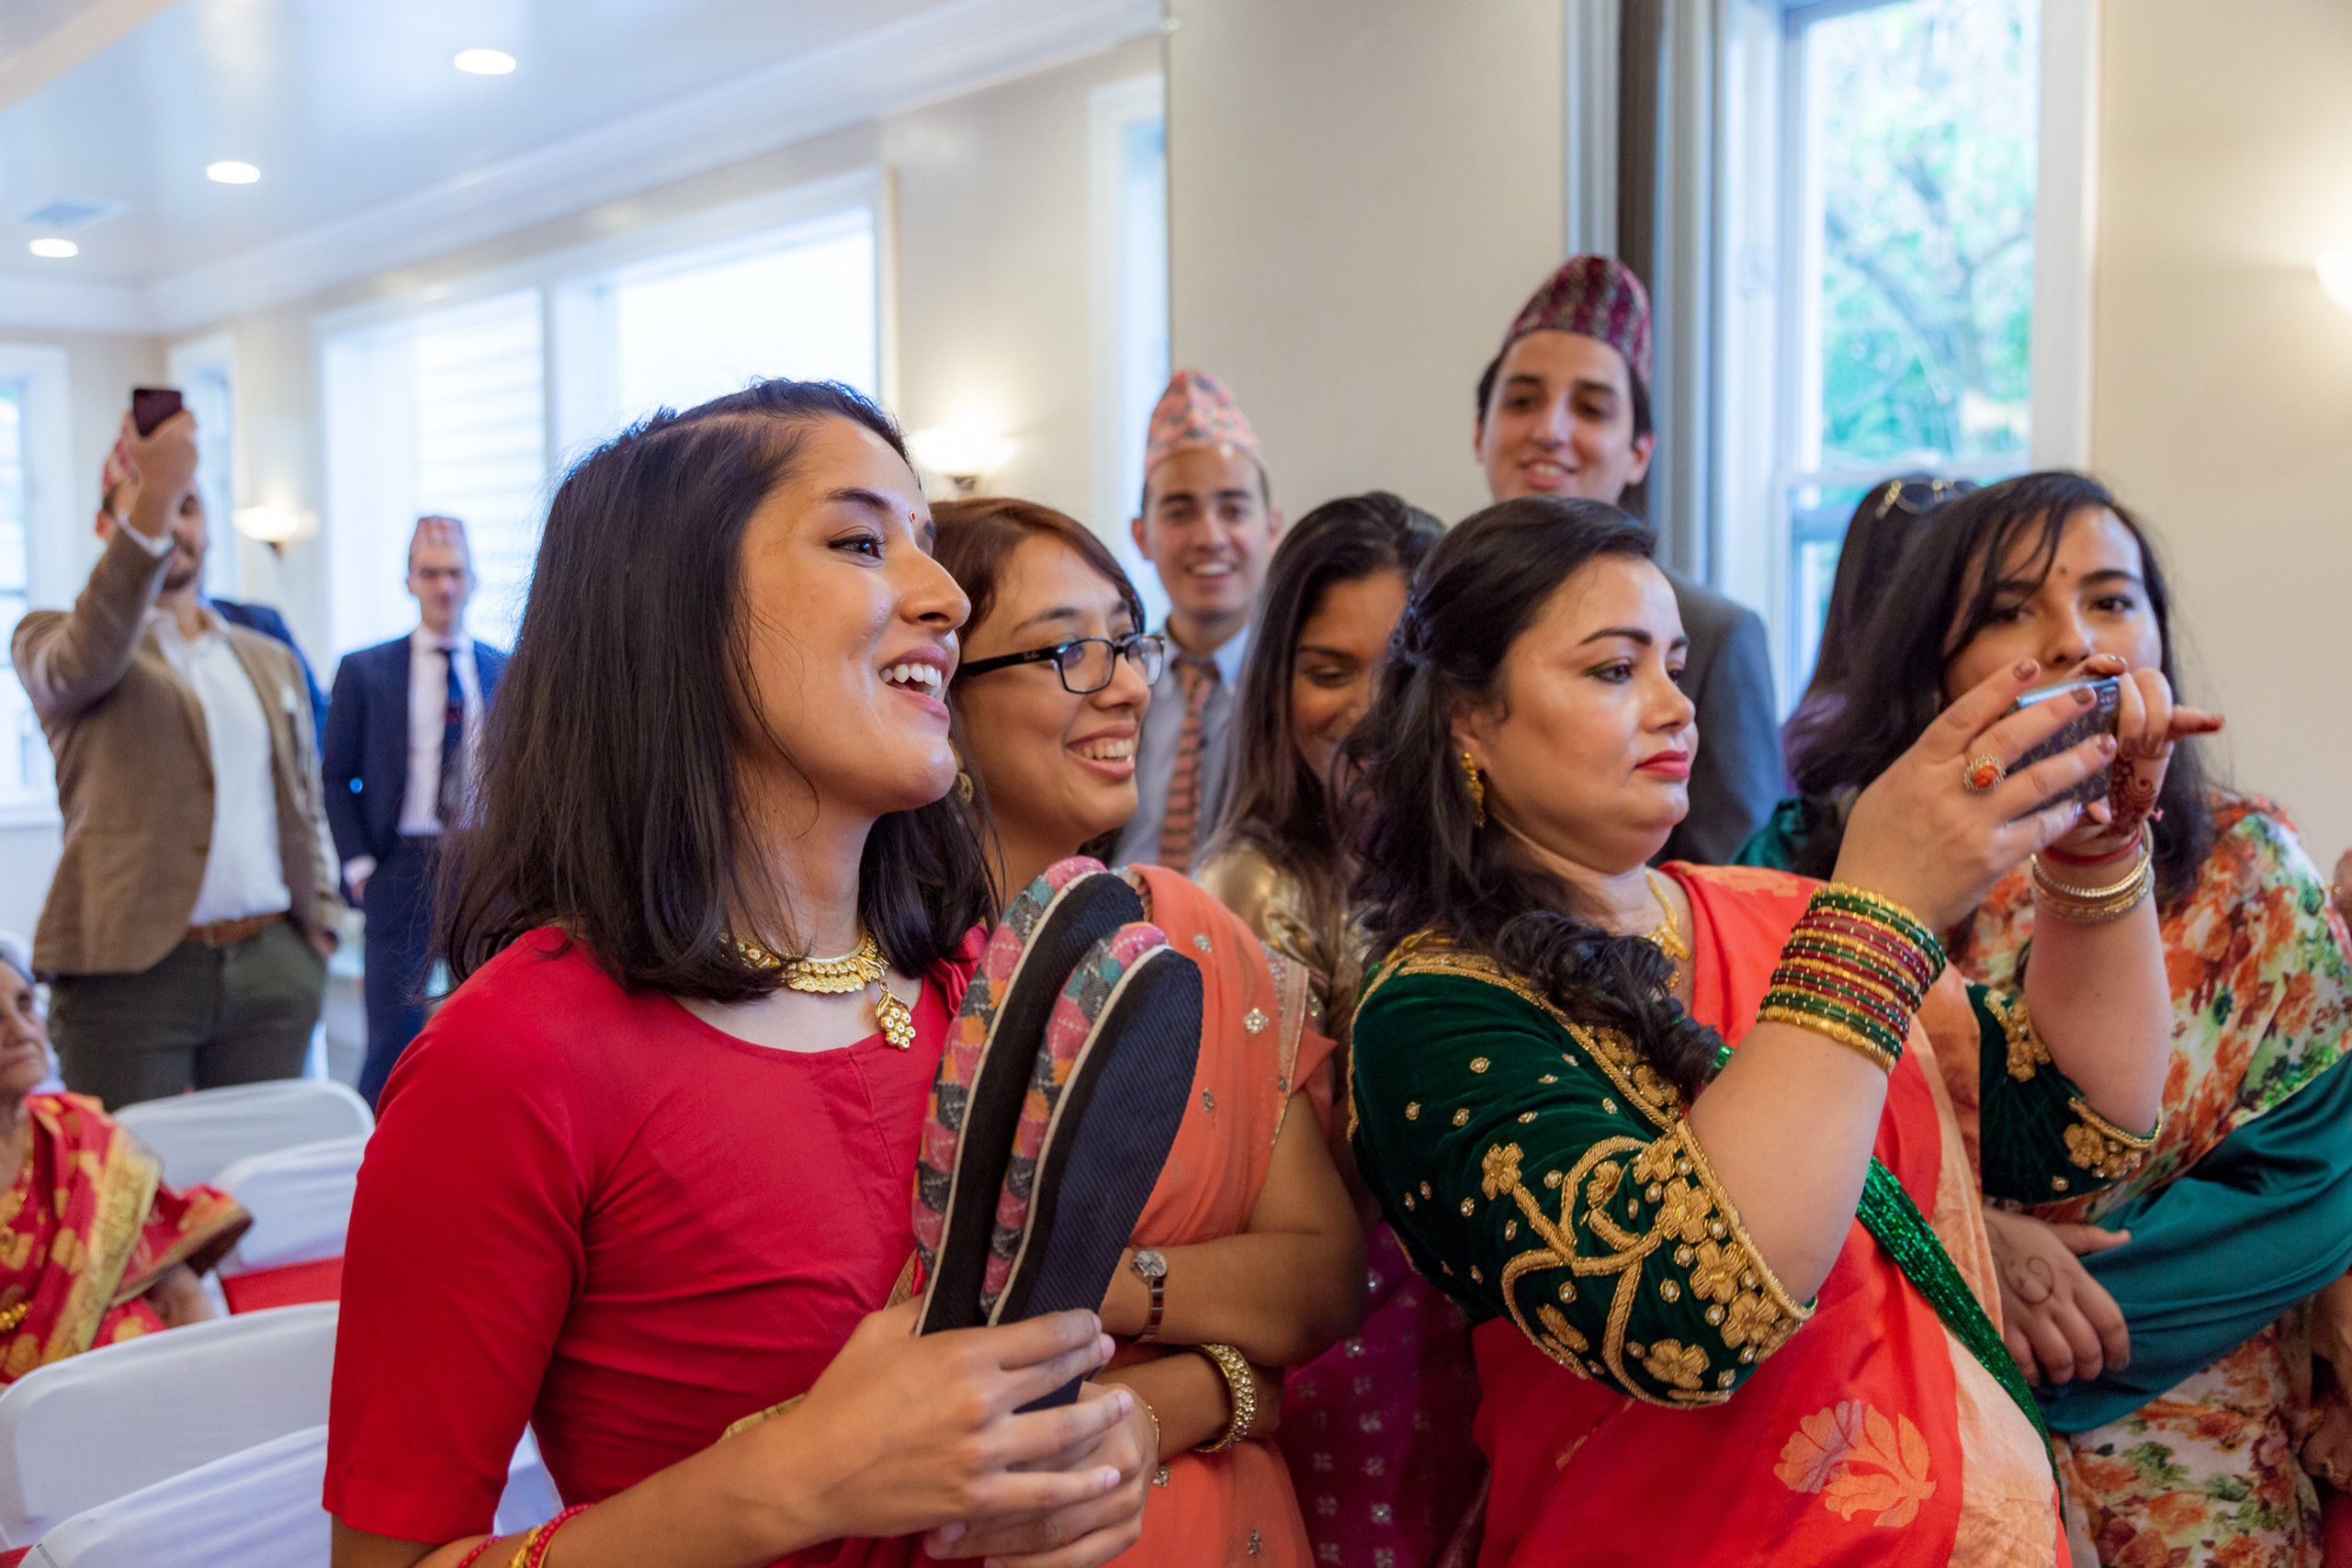 The bride's sisters steal the groom's shoes at some point during the Hindu ceremony and the groom must buy them back as an offering to the bride's family during the Hindu Ceremony at the ISKCON of DC in Potomac, Maryland.